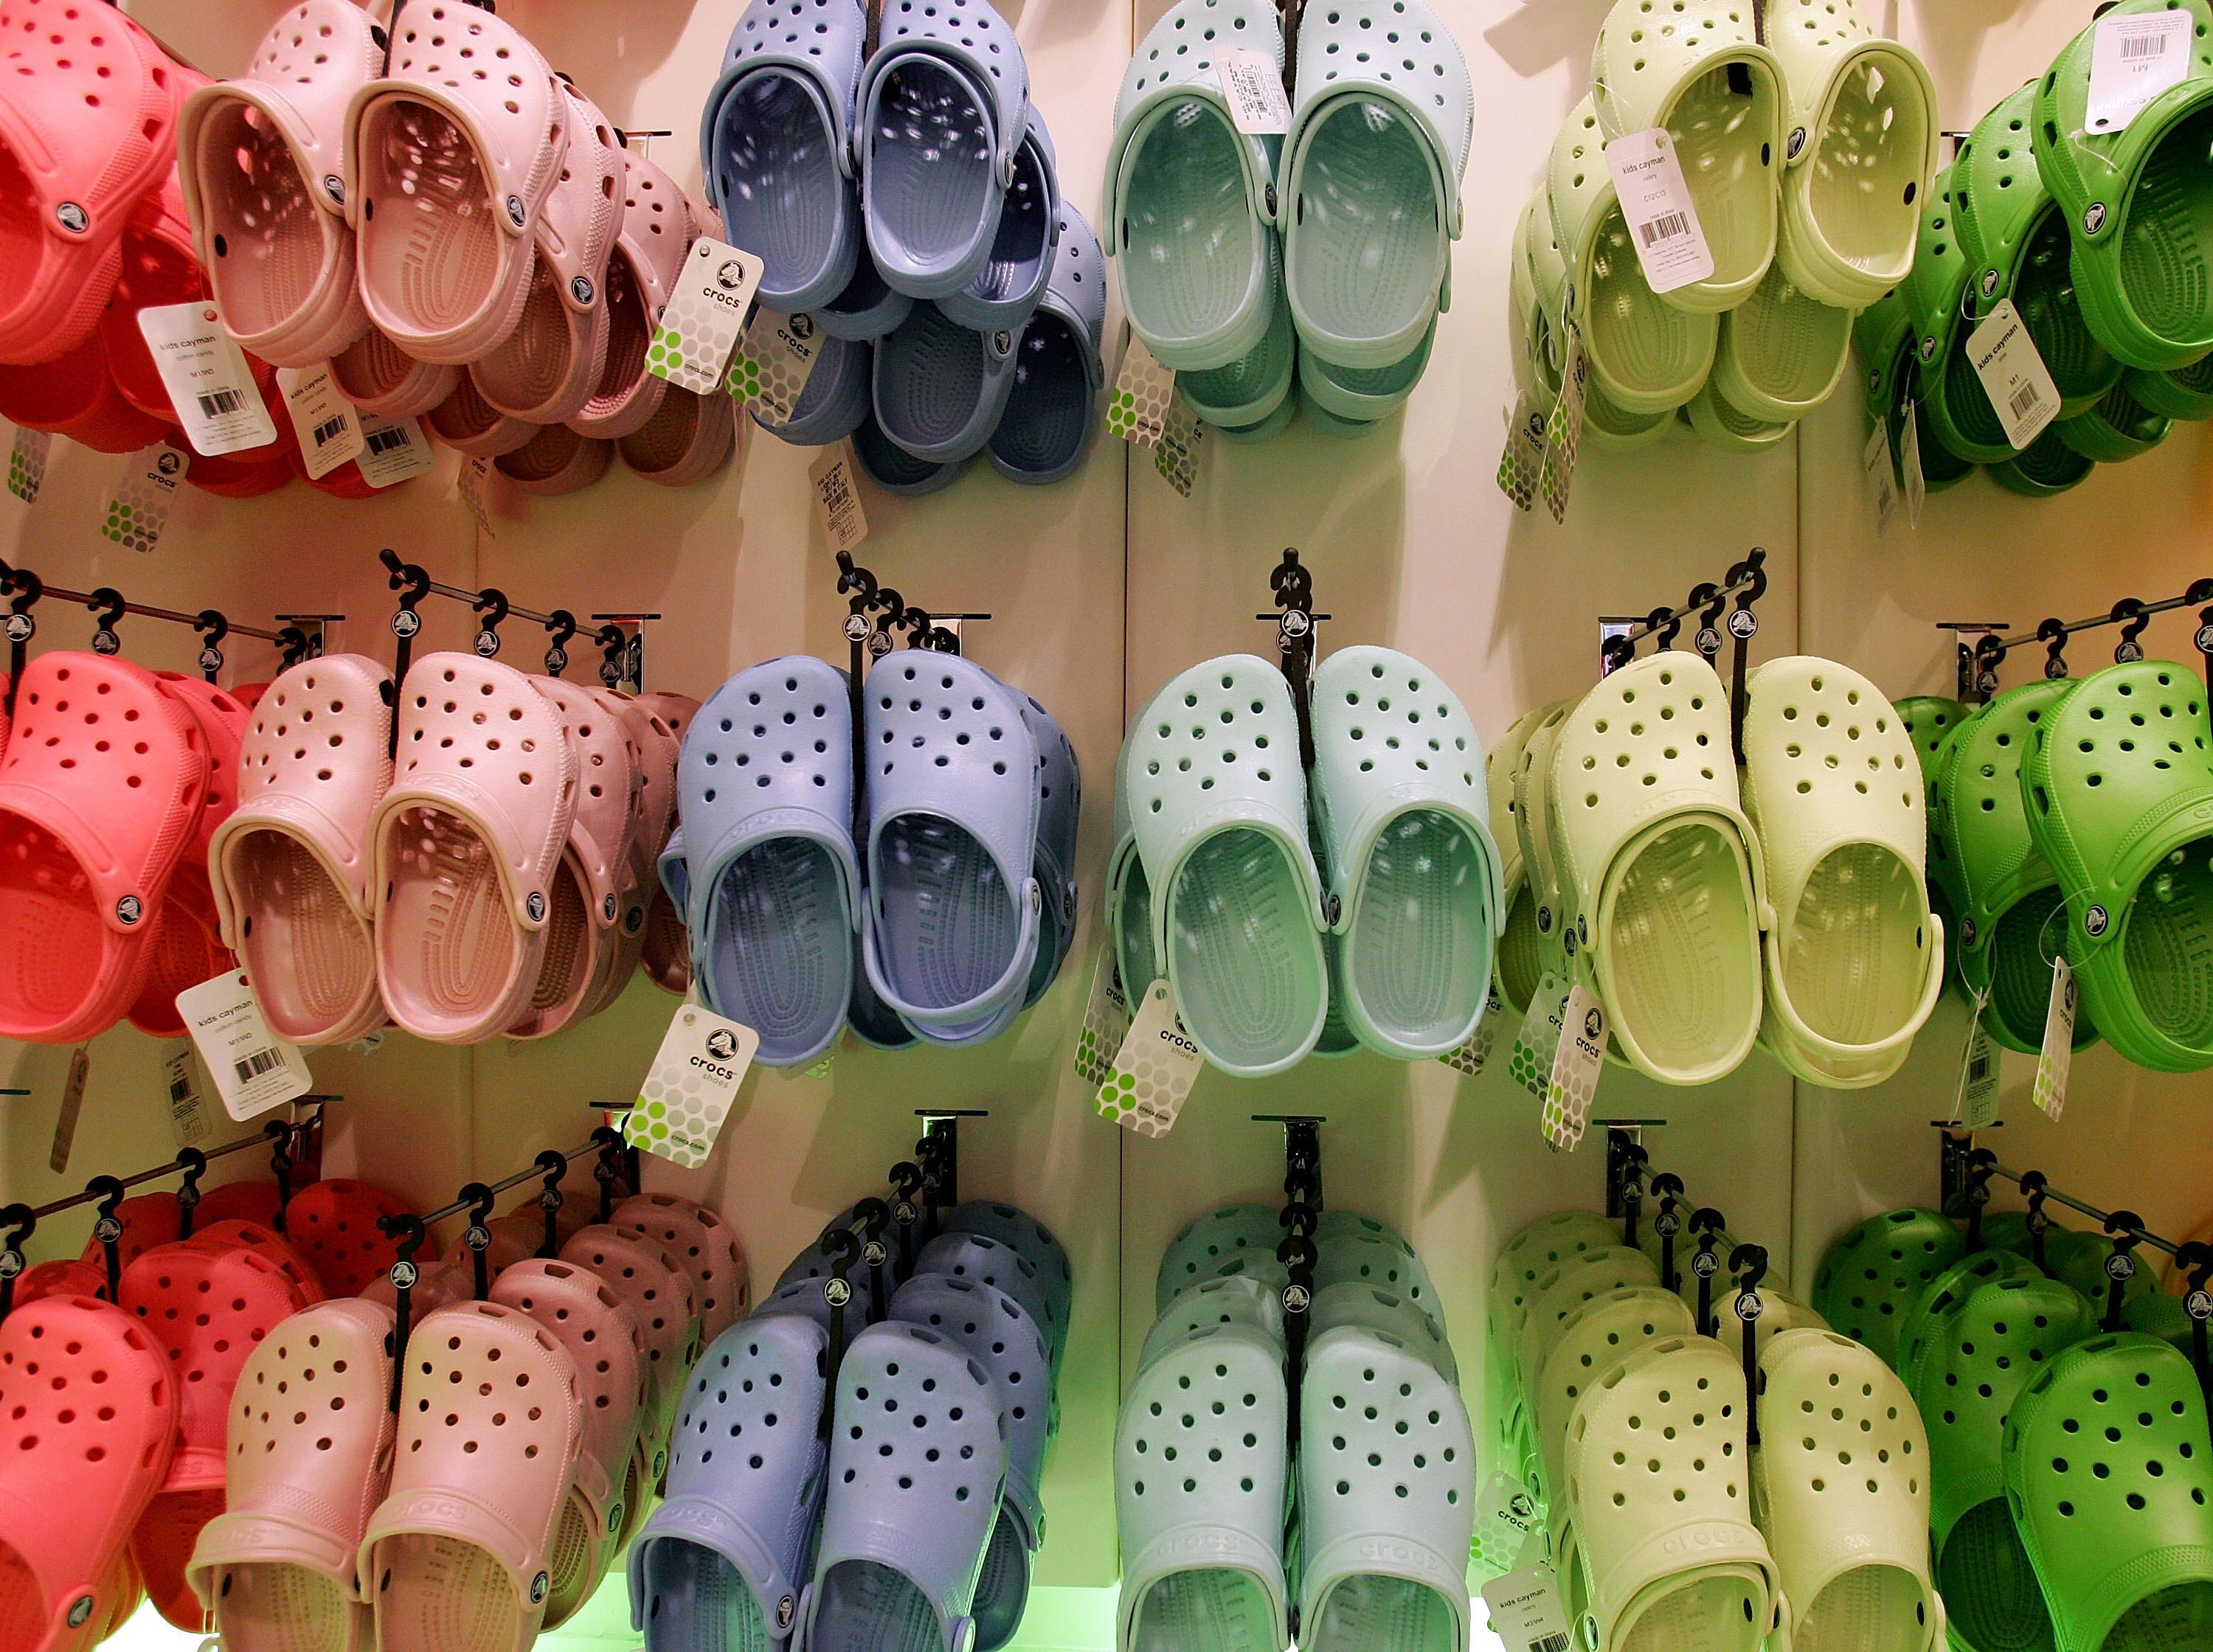 Brits can get Crocs on the cheap as judges rule shoe's distinctive design CAN be copied by other firms paving way for flood of knock-offs